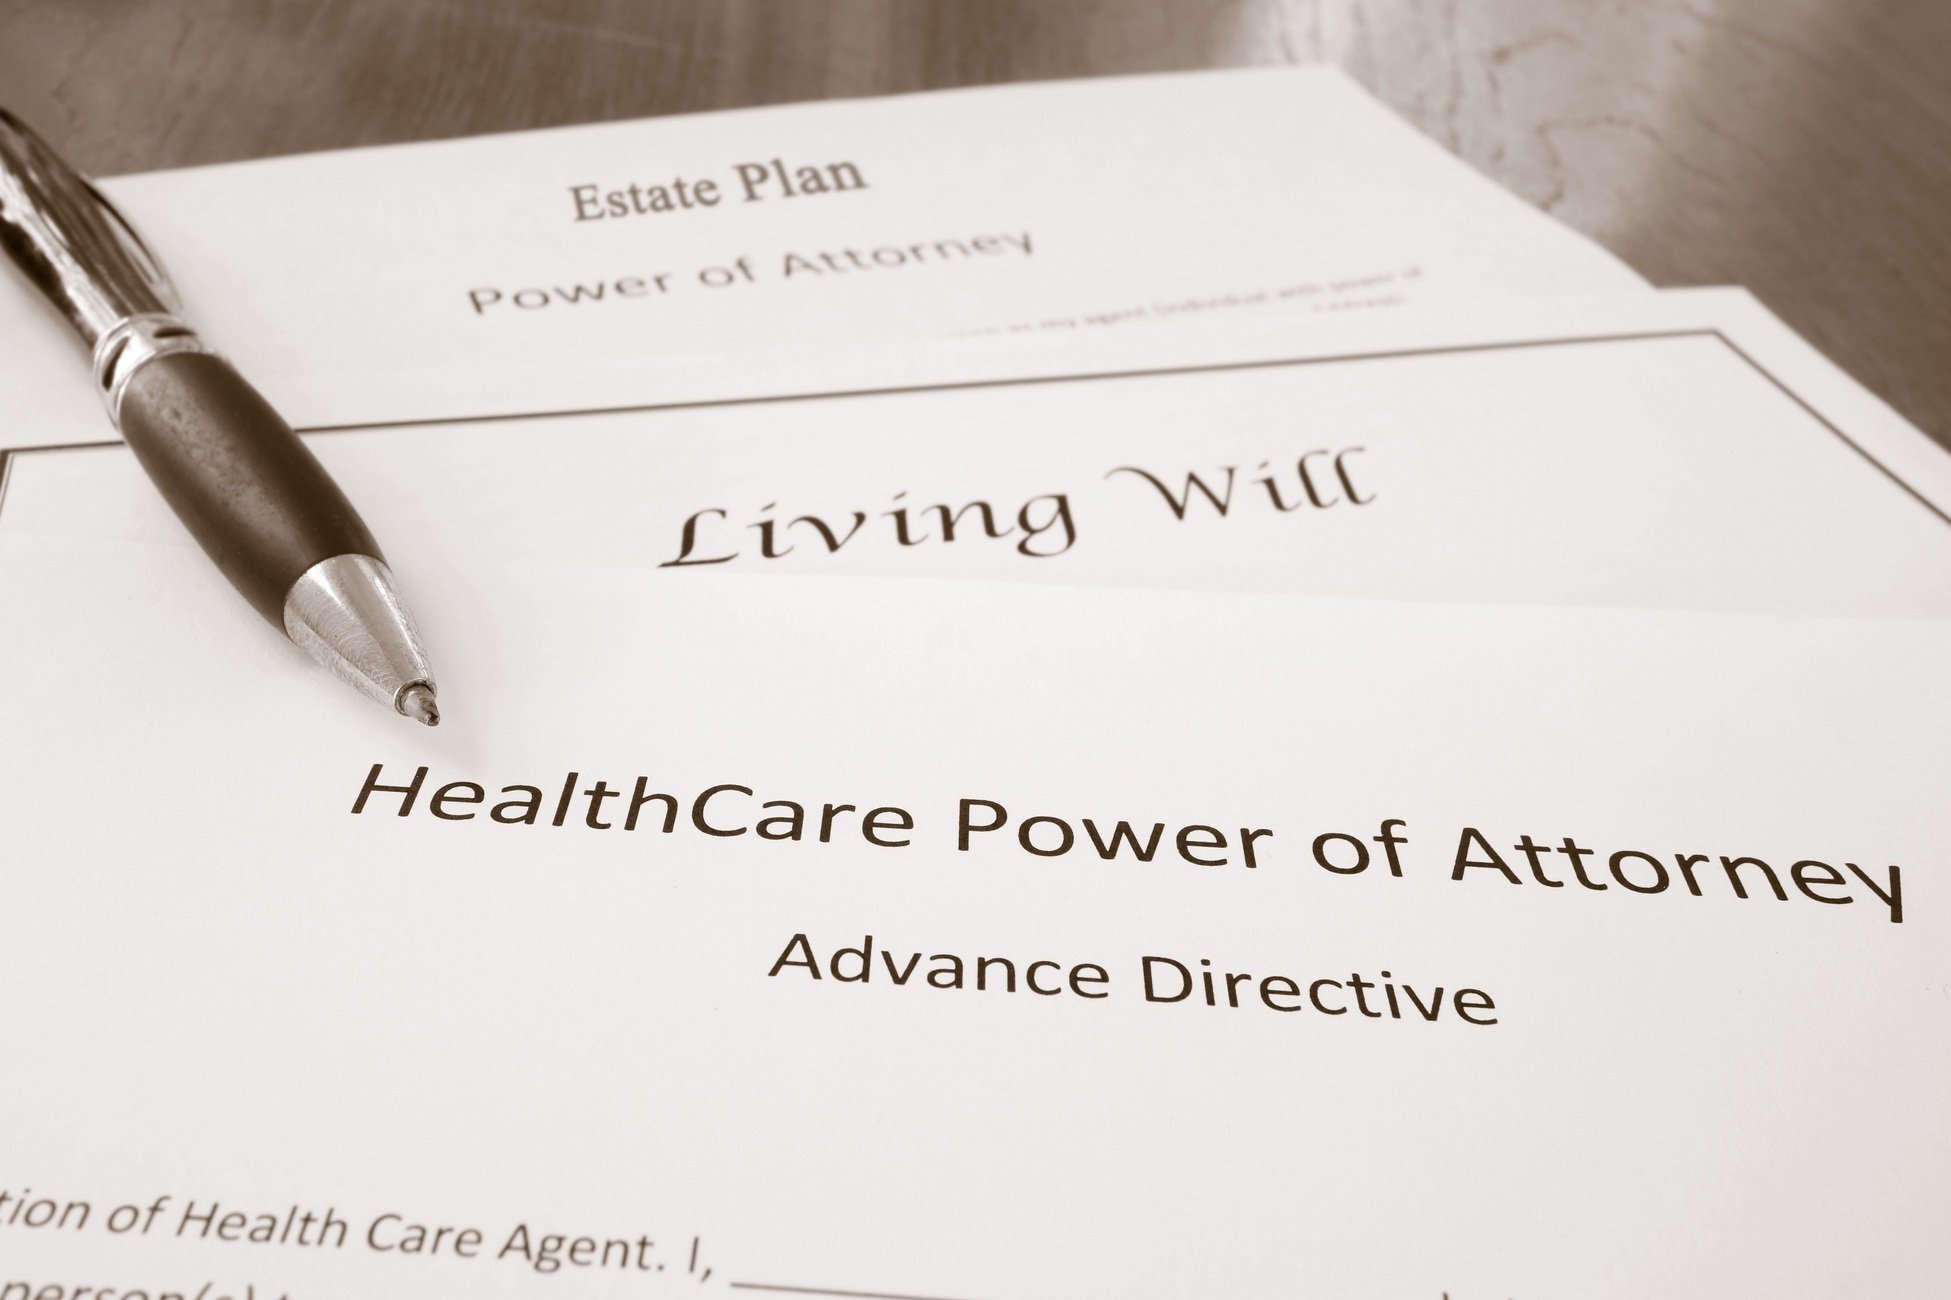 advance directives - Be prepared for serious illness or incapacity with an up-to-date set of advance directives, including a durable power of attorney, healthcare surrogate designation, and living will.